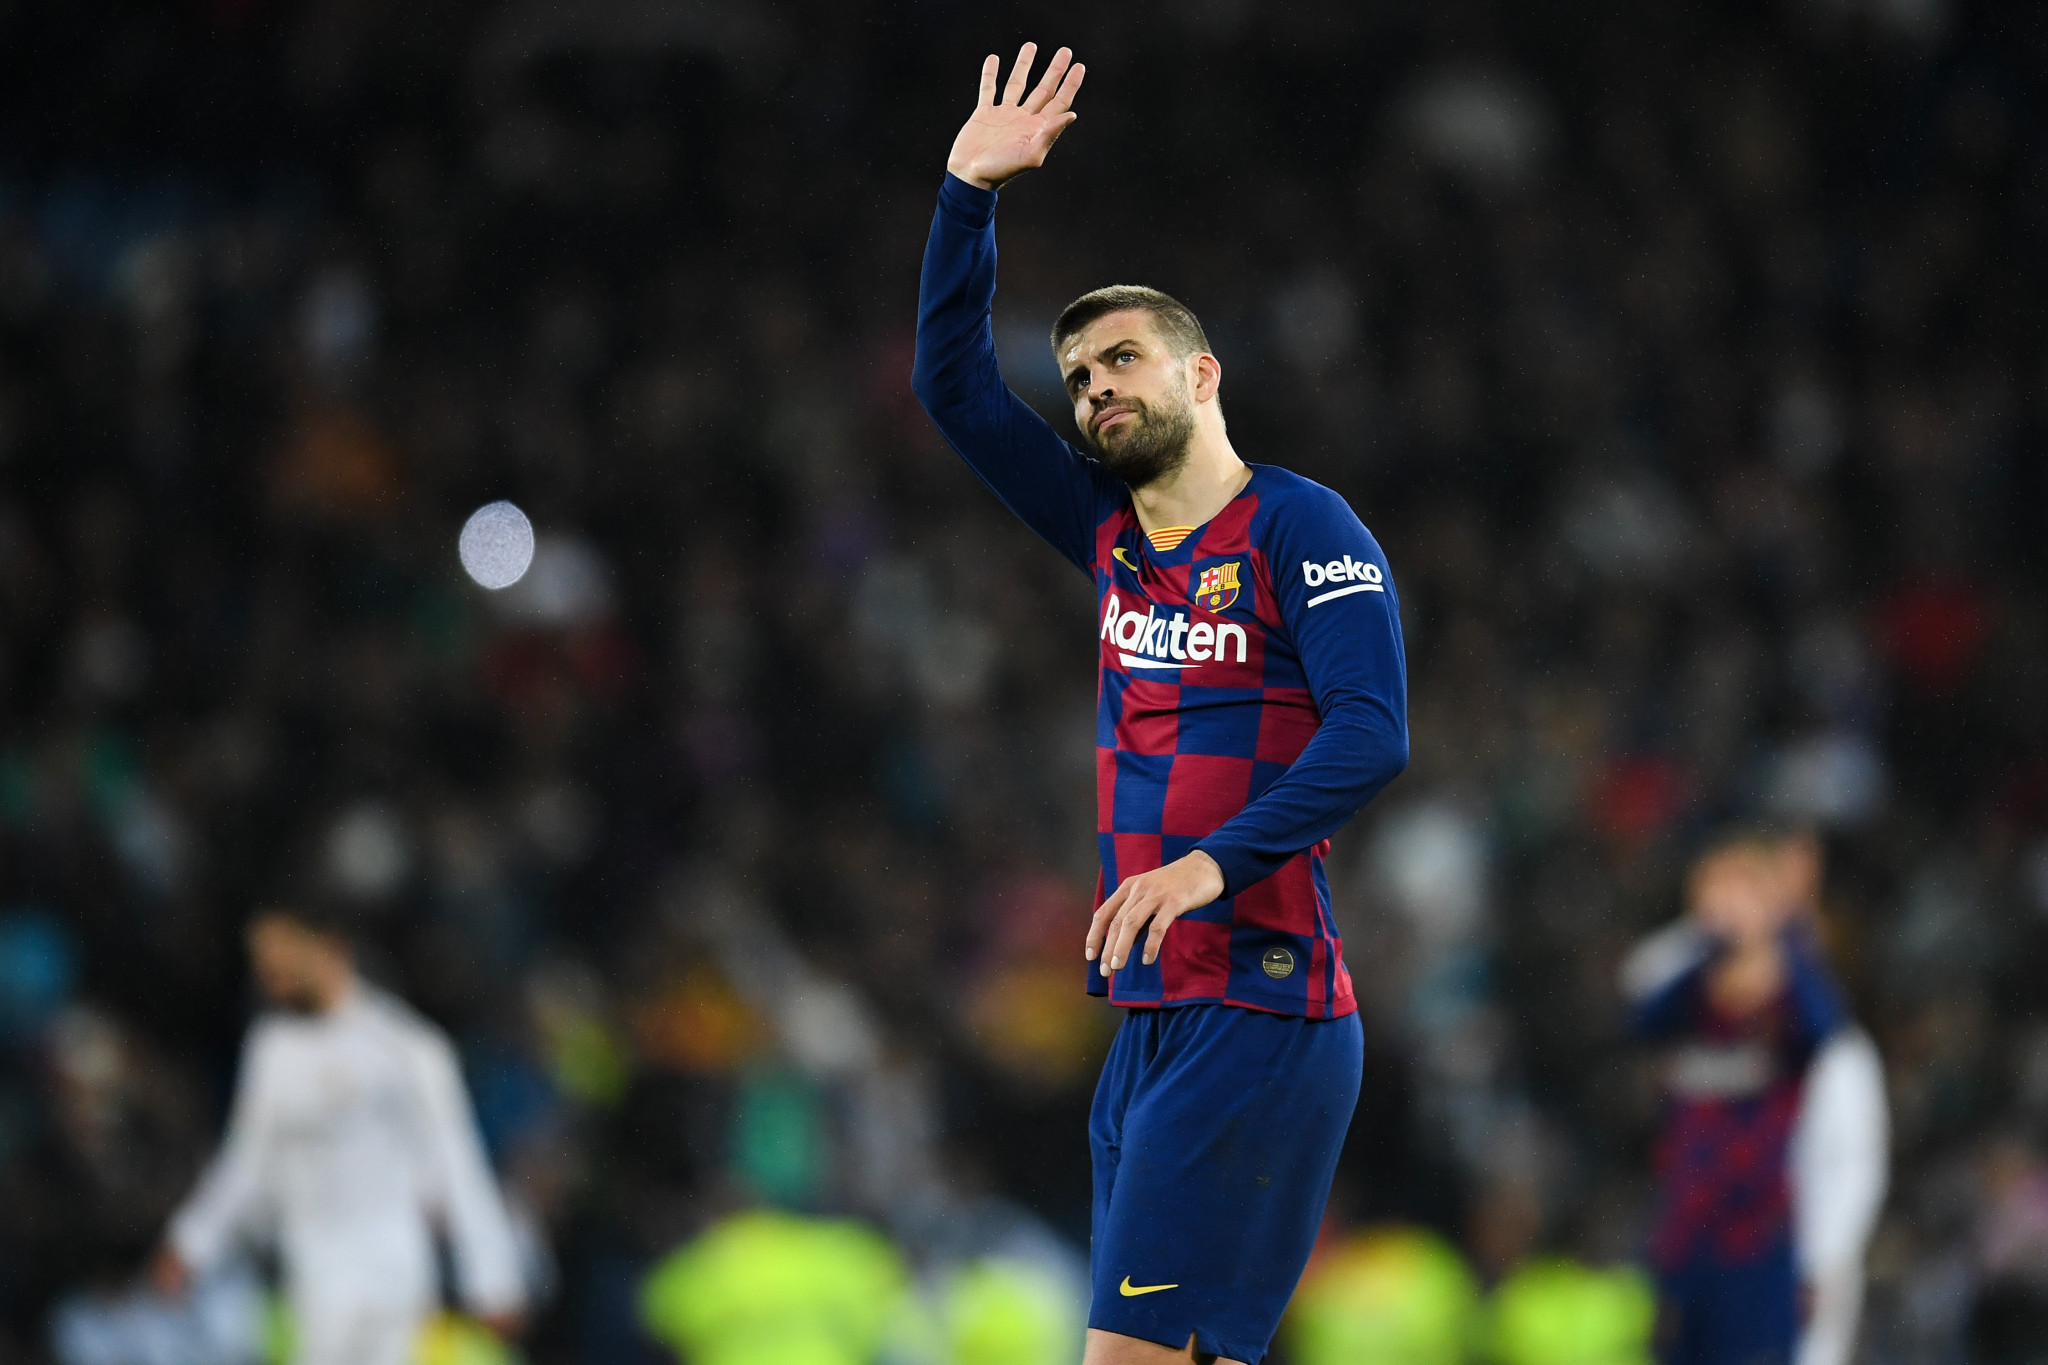 Gerard Piqué has expressed doubts over whether the event will take place should fans not be present ©Getty Images